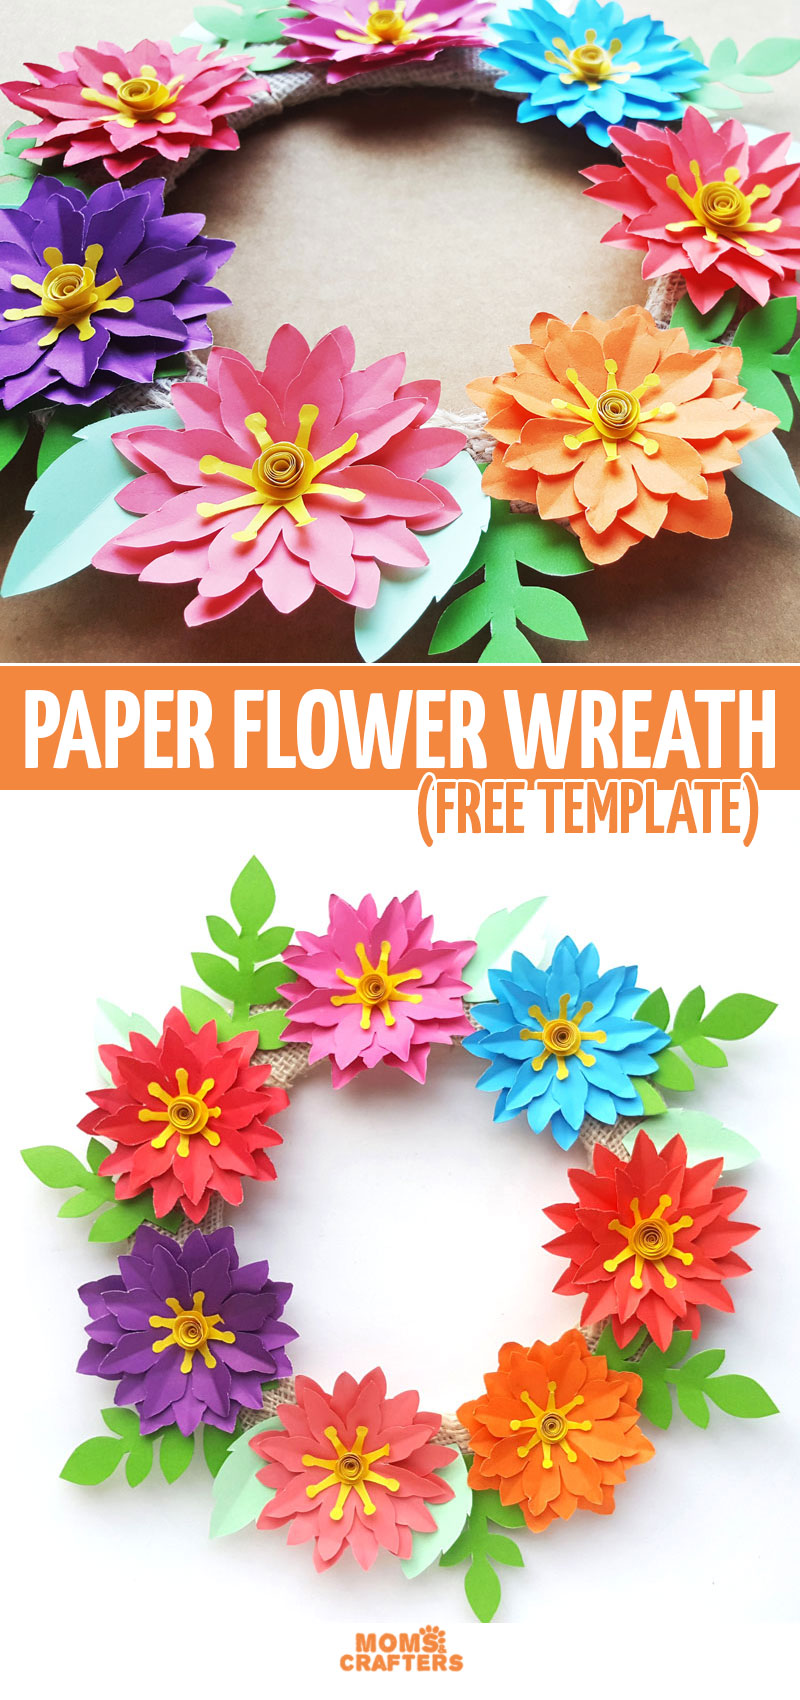 Click for a free printable paper flower templates and to learn how to make some beautiful spring and summer decor with a paper flower wreath tutorial